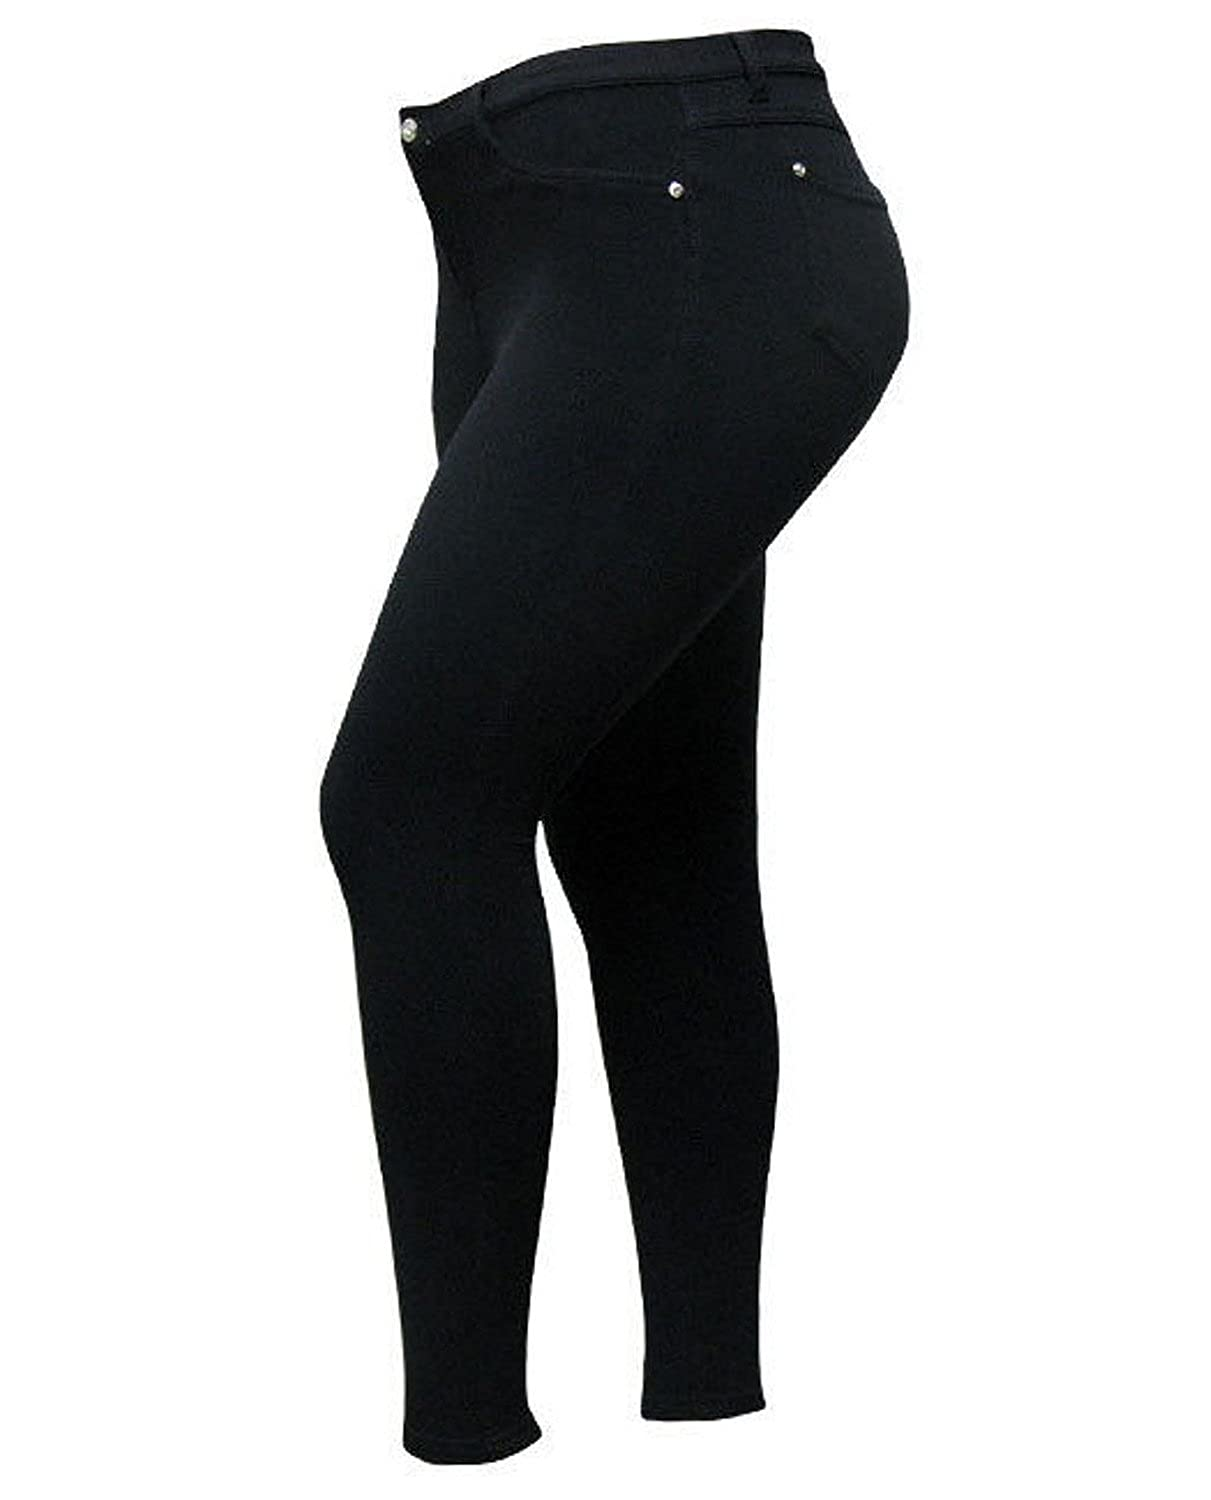 Black high waisted skinny jeans plus size